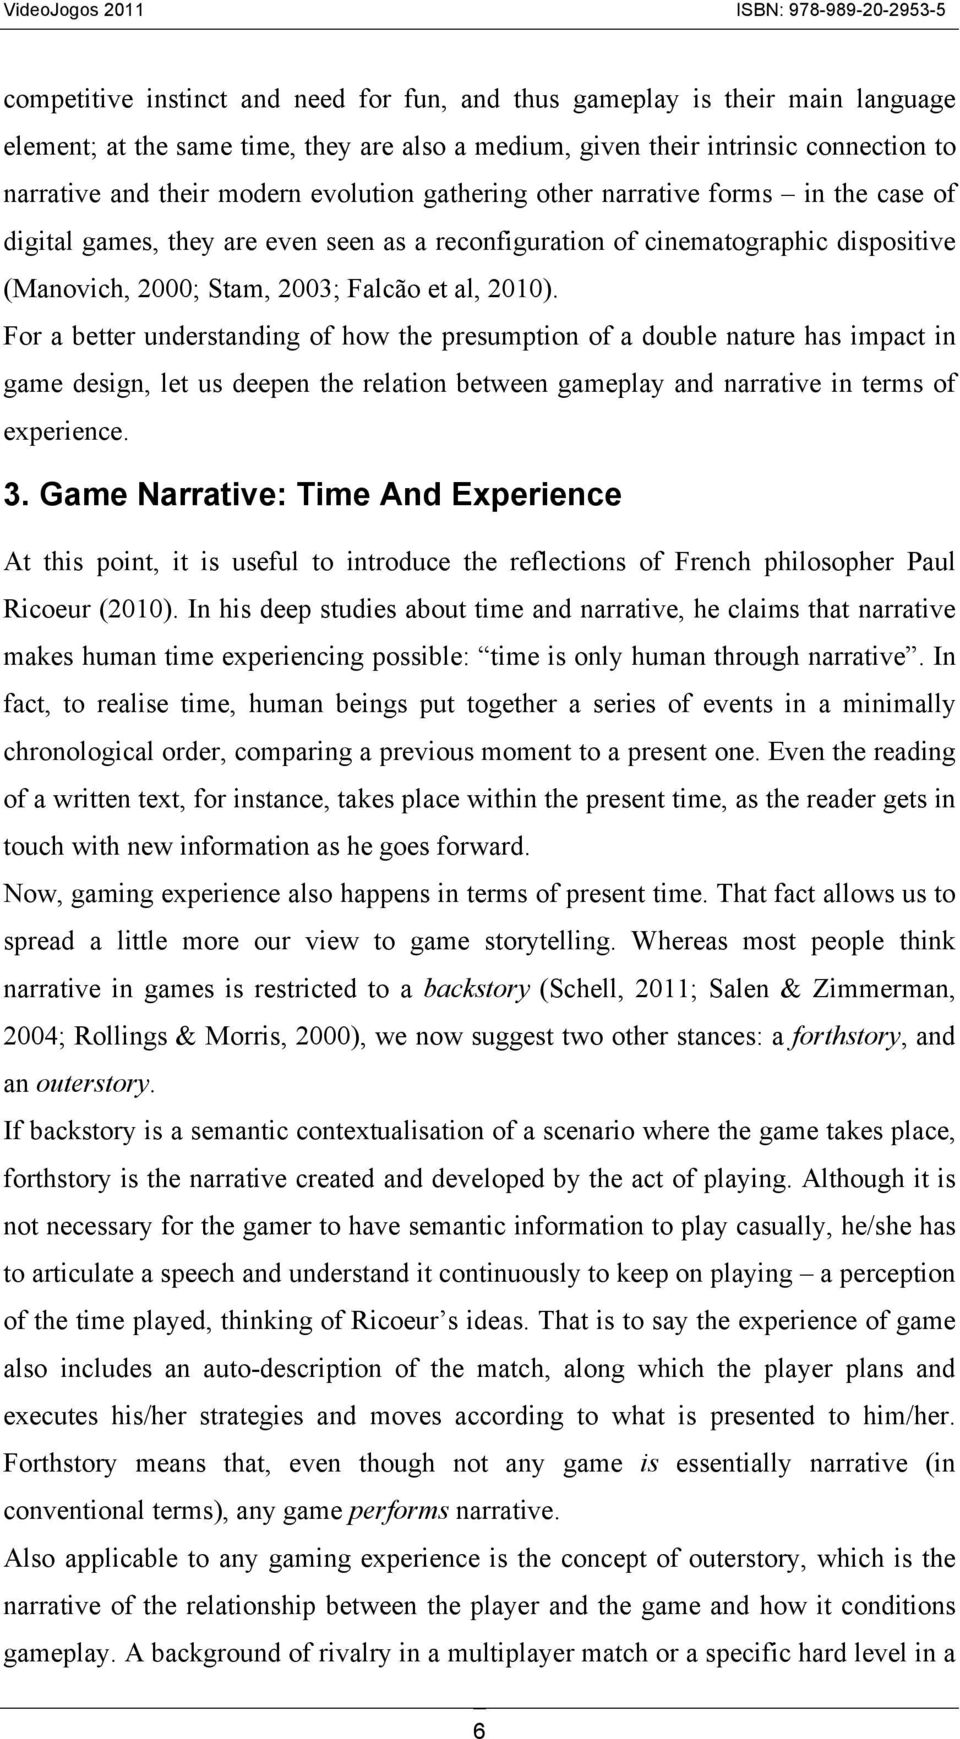 For a better understanding of how the presumption of a double nature has impact in game design, let us deepen the relation between gameplay and narrative in terms of experience. 3.